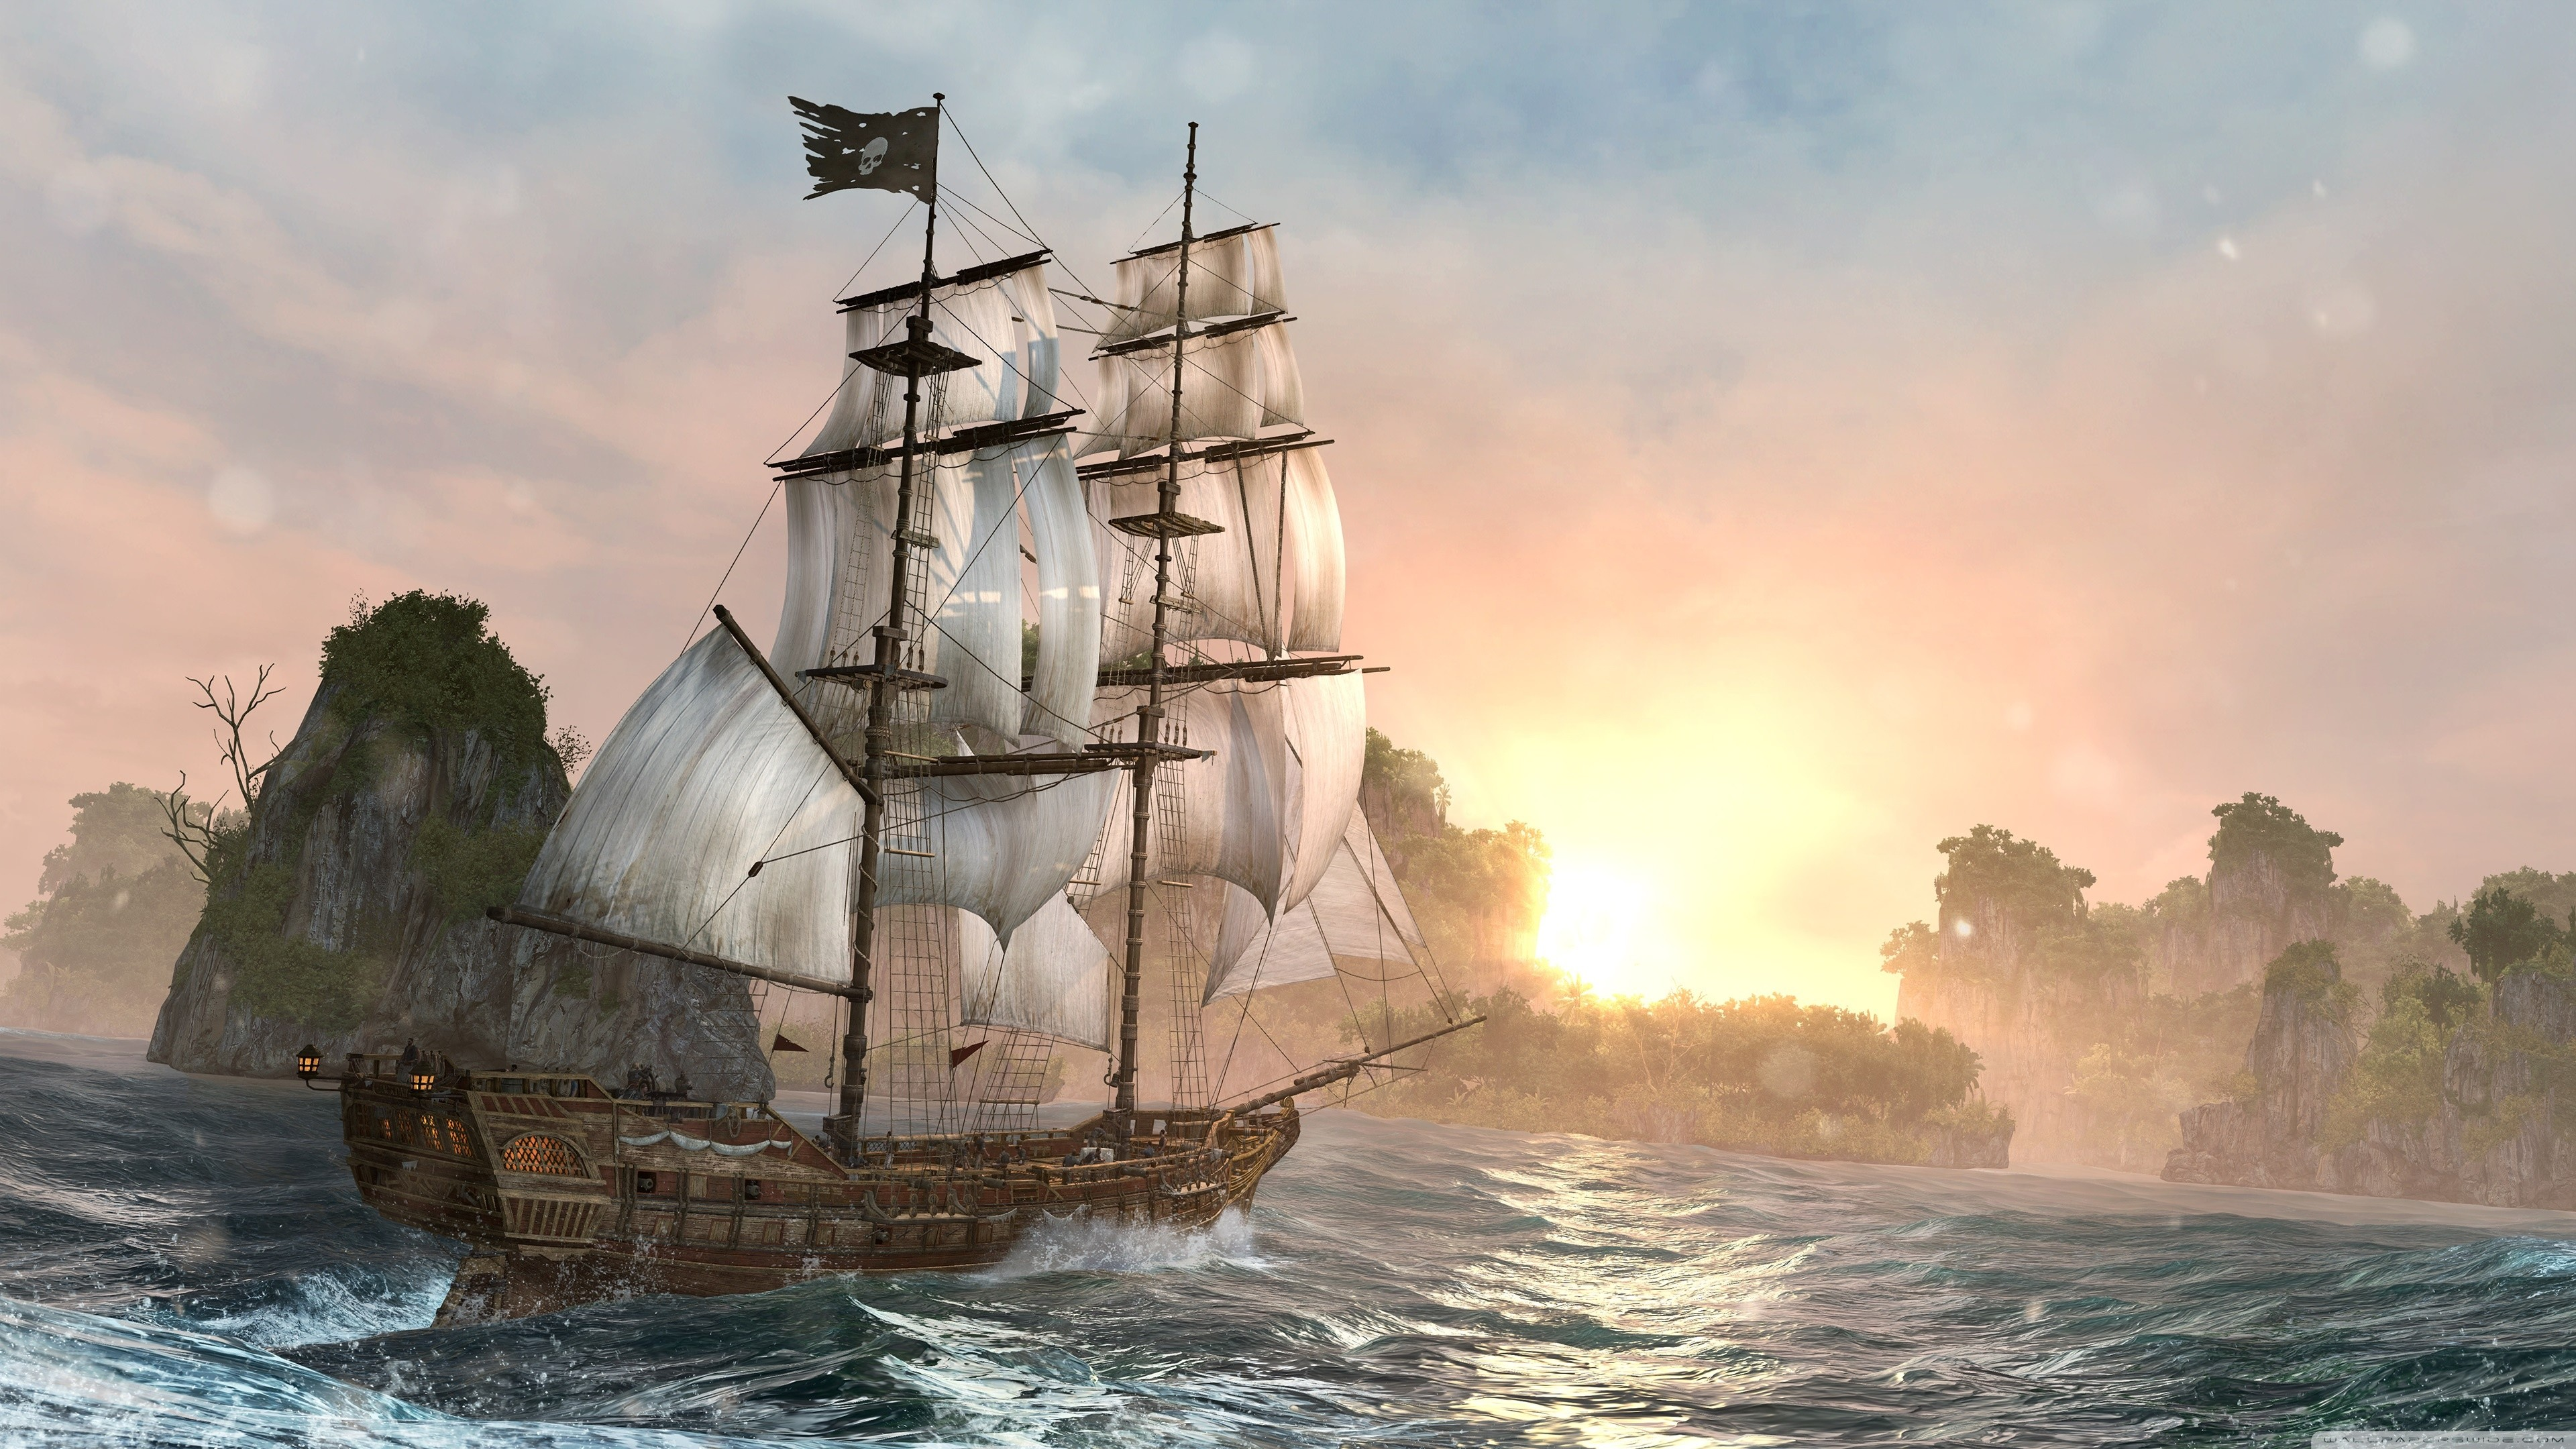 3840x2160 ... Ghost Pirate Ship Wallpaper Mobile Battle Vintage Ship Painting .